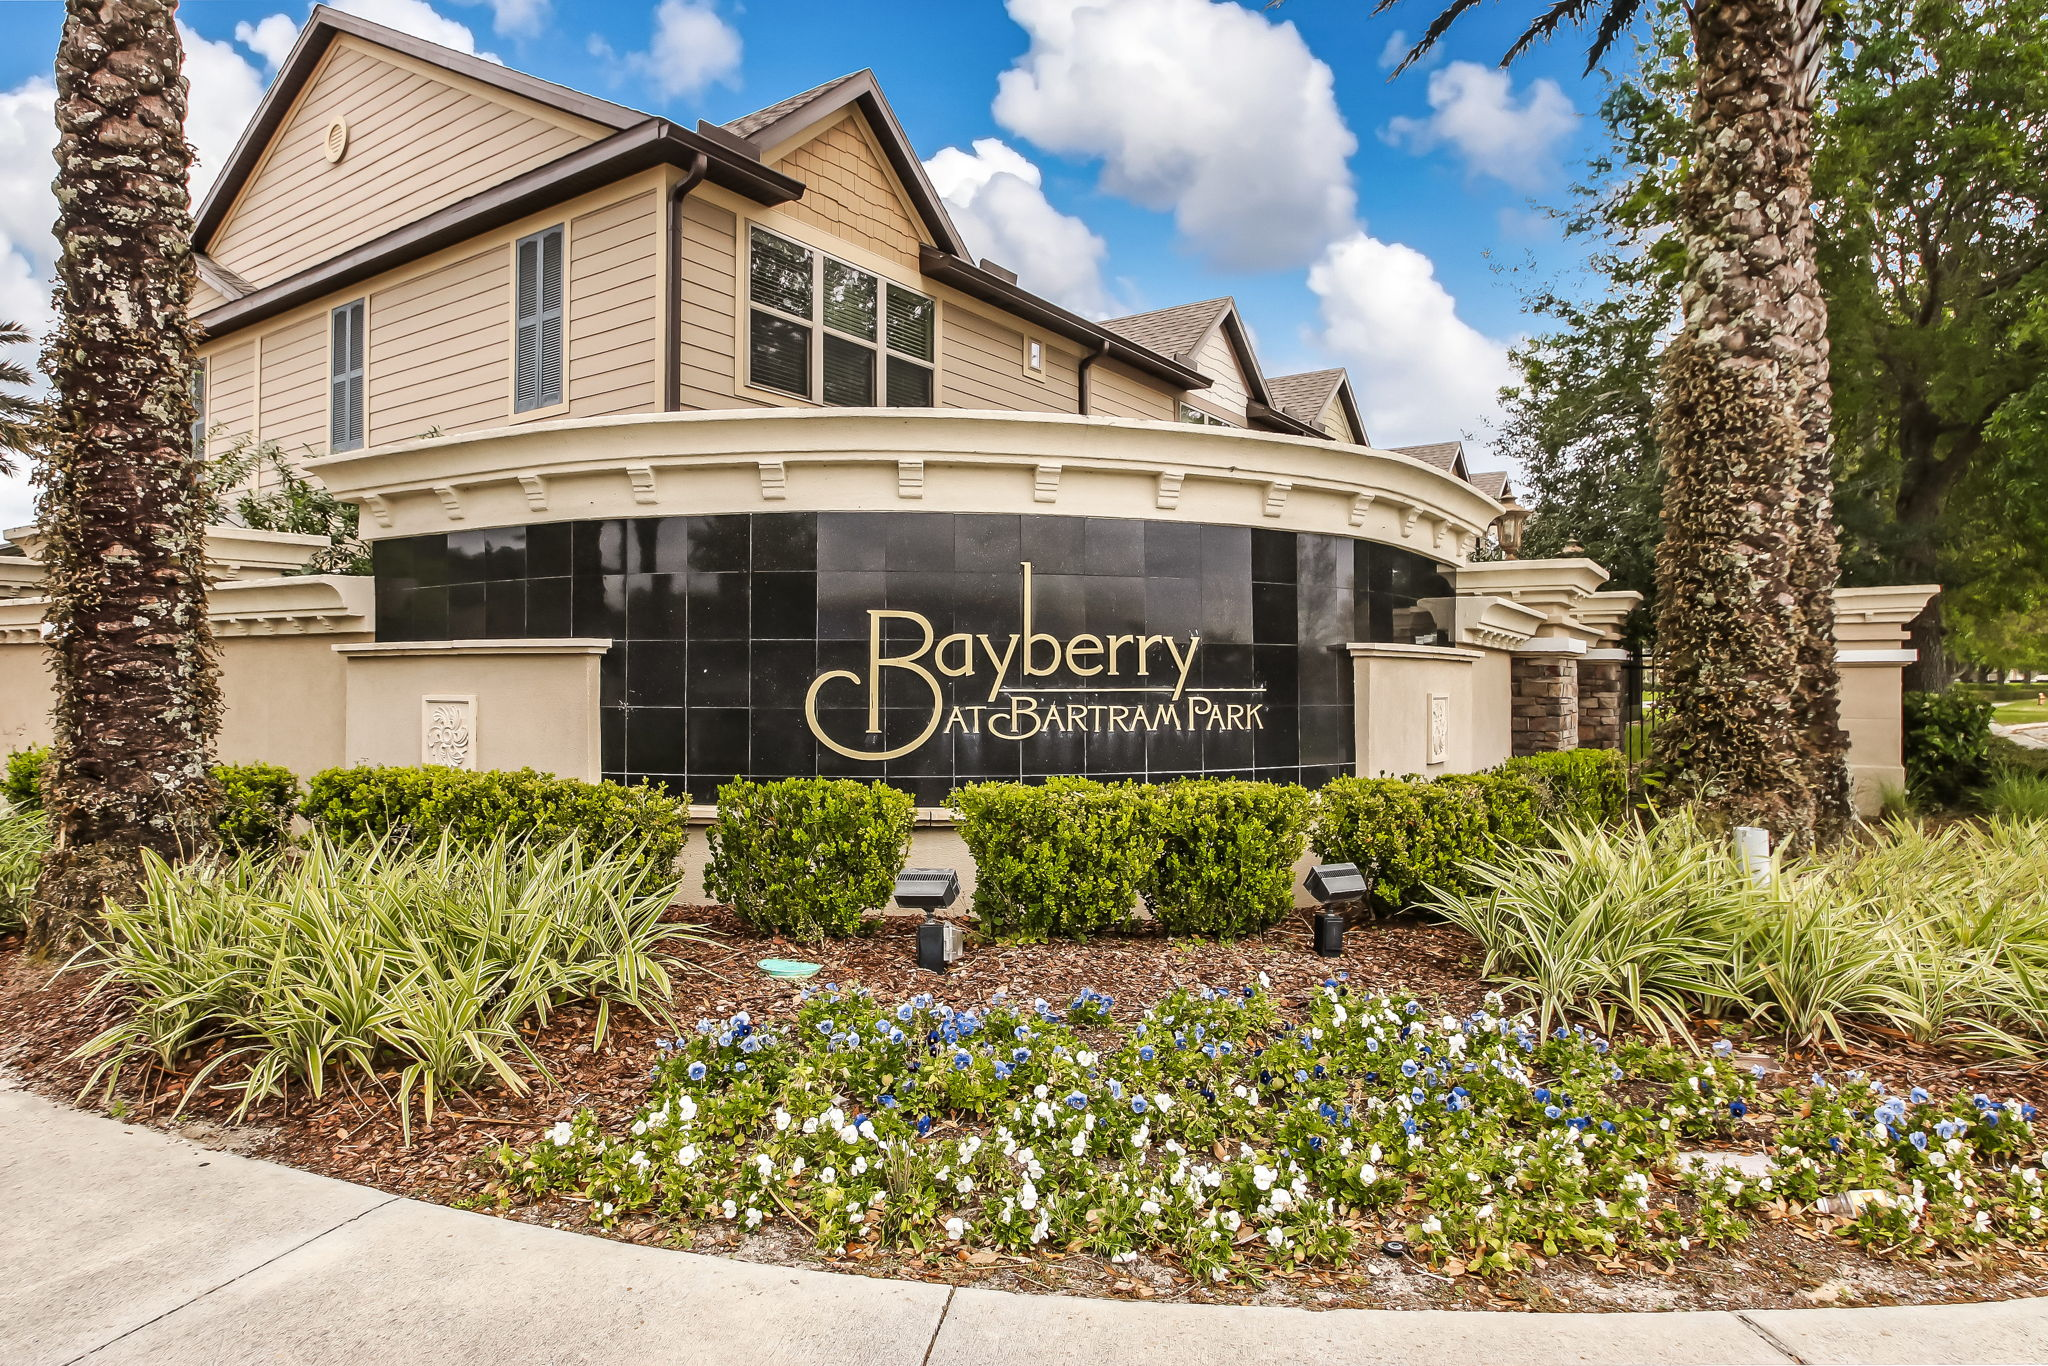 Bayberry at Bartram Park